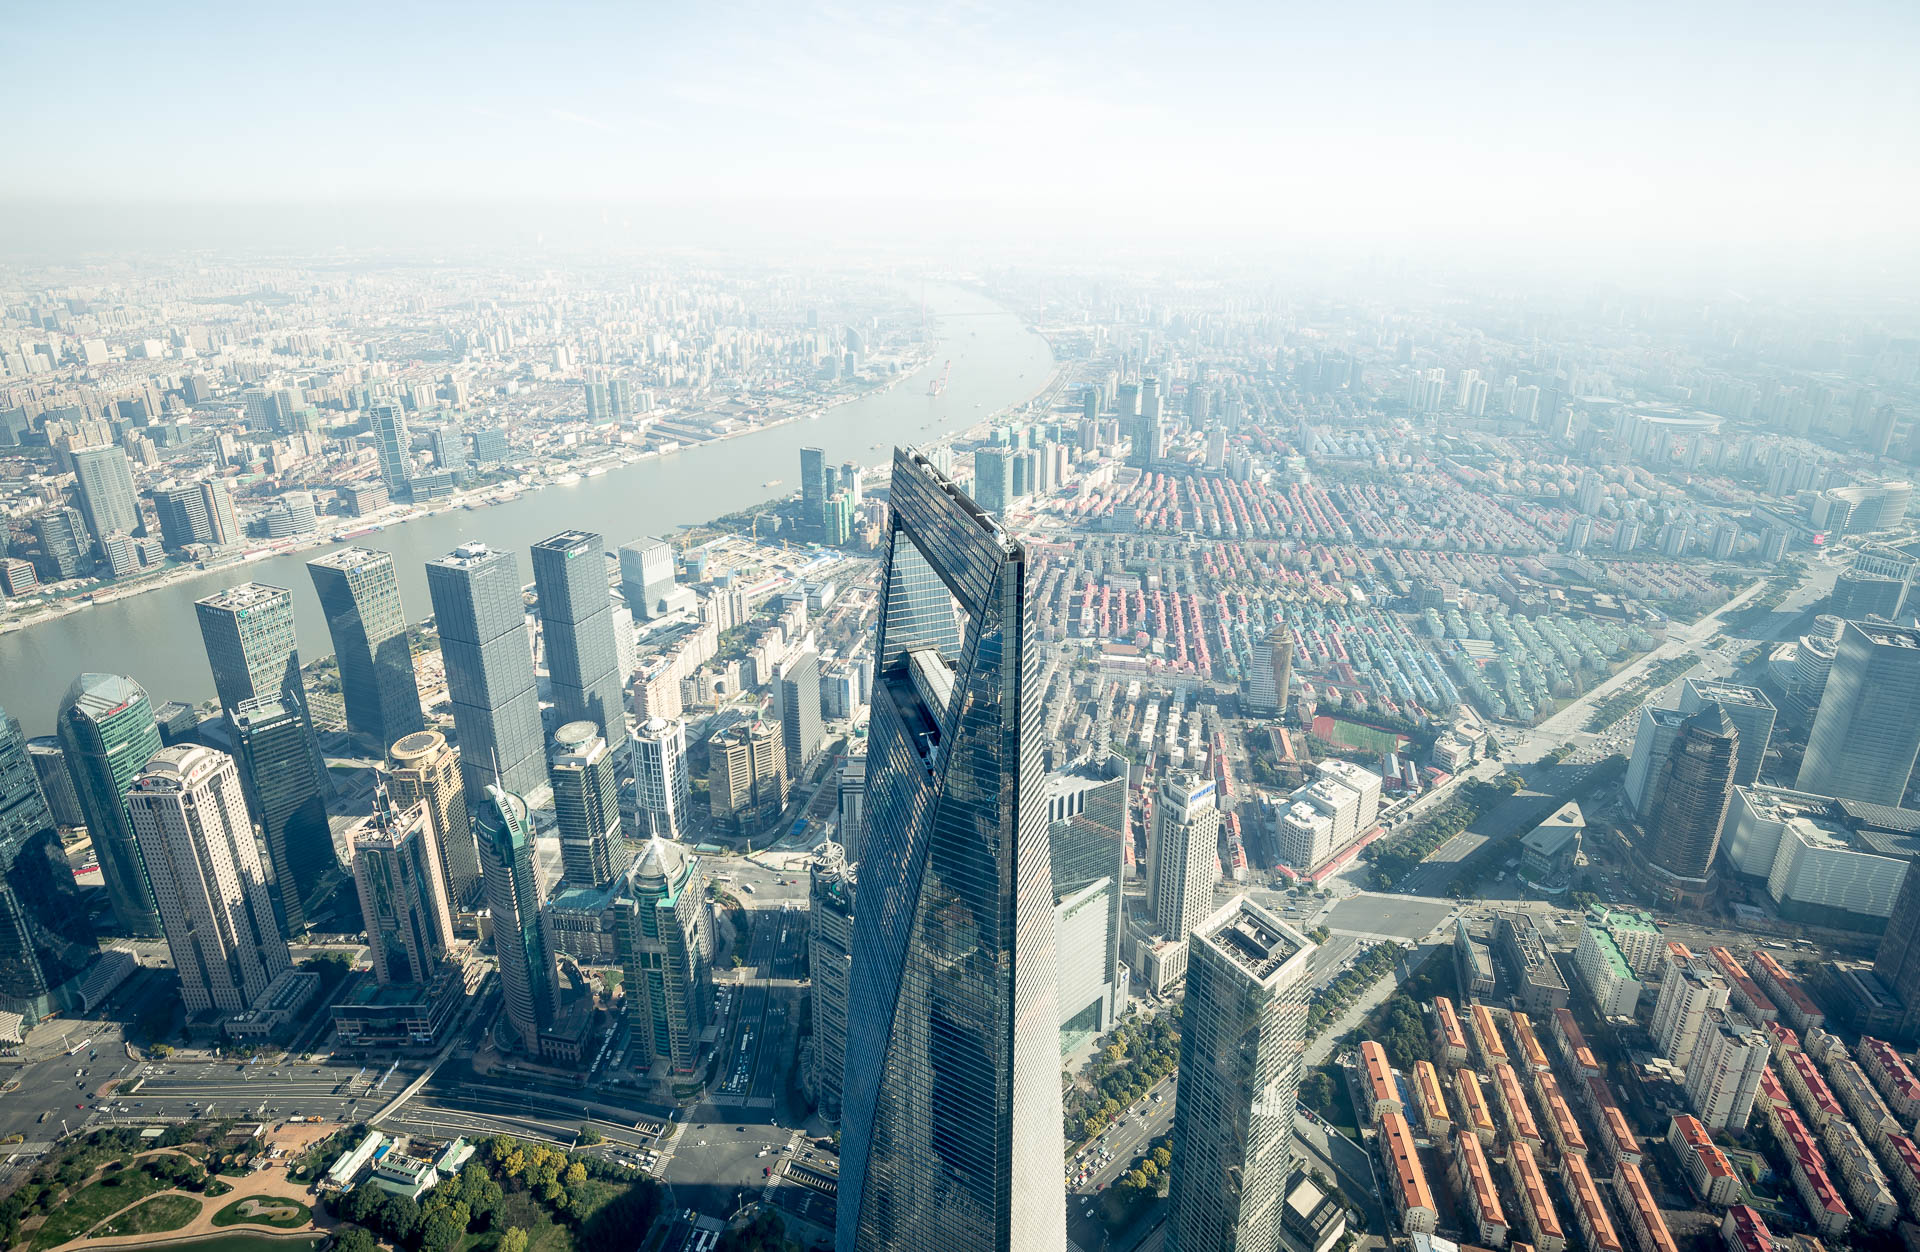 Shanghai World Financial Center from above